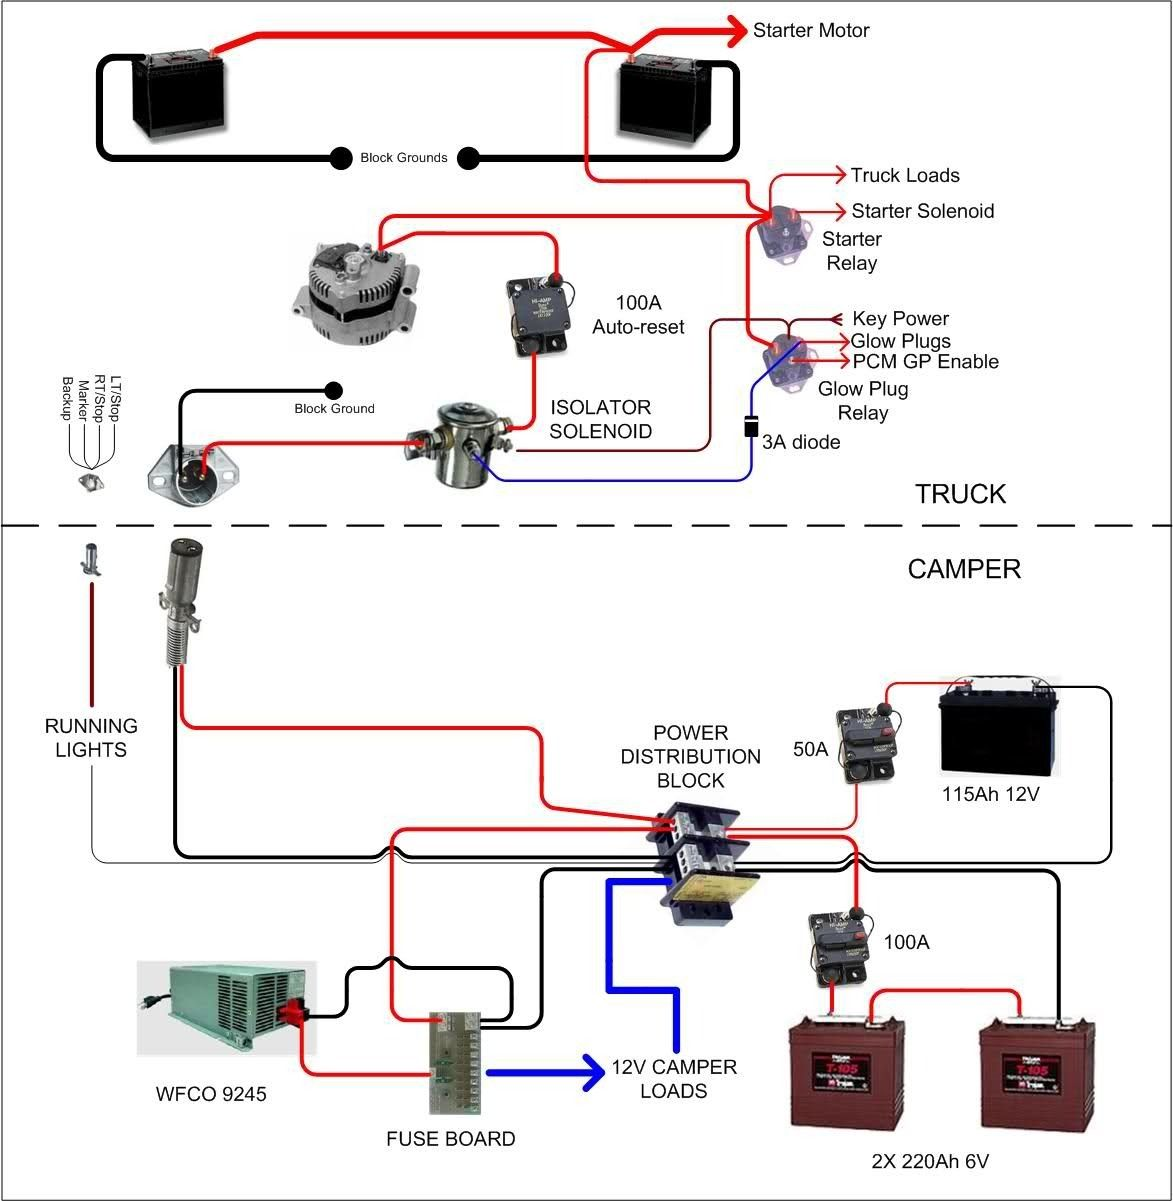 Travel Trailer Converter Wiring Diagram | WiringDiagram.org | Trailer  wiring diagram, Electrical wiring diagram, Electrical diagramPinterest